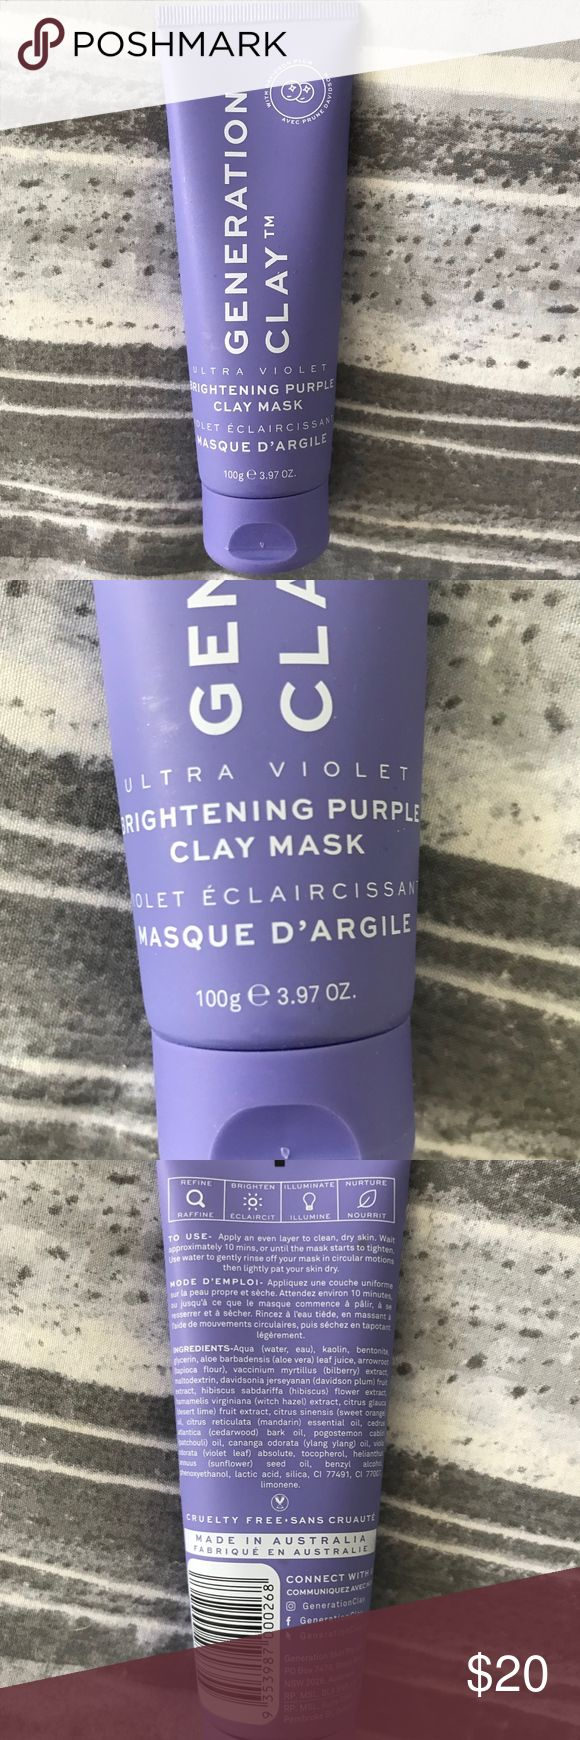 Generation Clay Ultra Violet Brightening Clay Mask NWT in